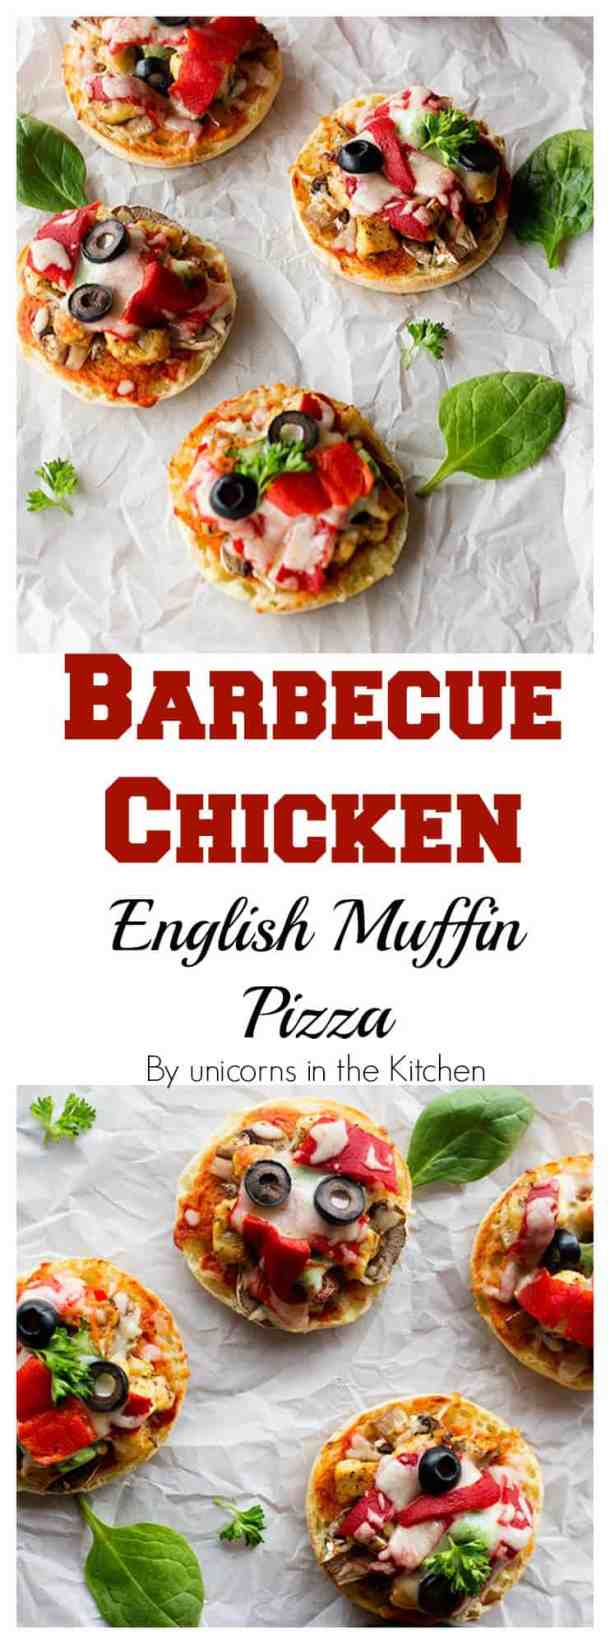 Craving pizza but don't want to make the dough? This Barbecue Chicken English Muffin Pizza makes things super easy! 20 minutes from start to table!